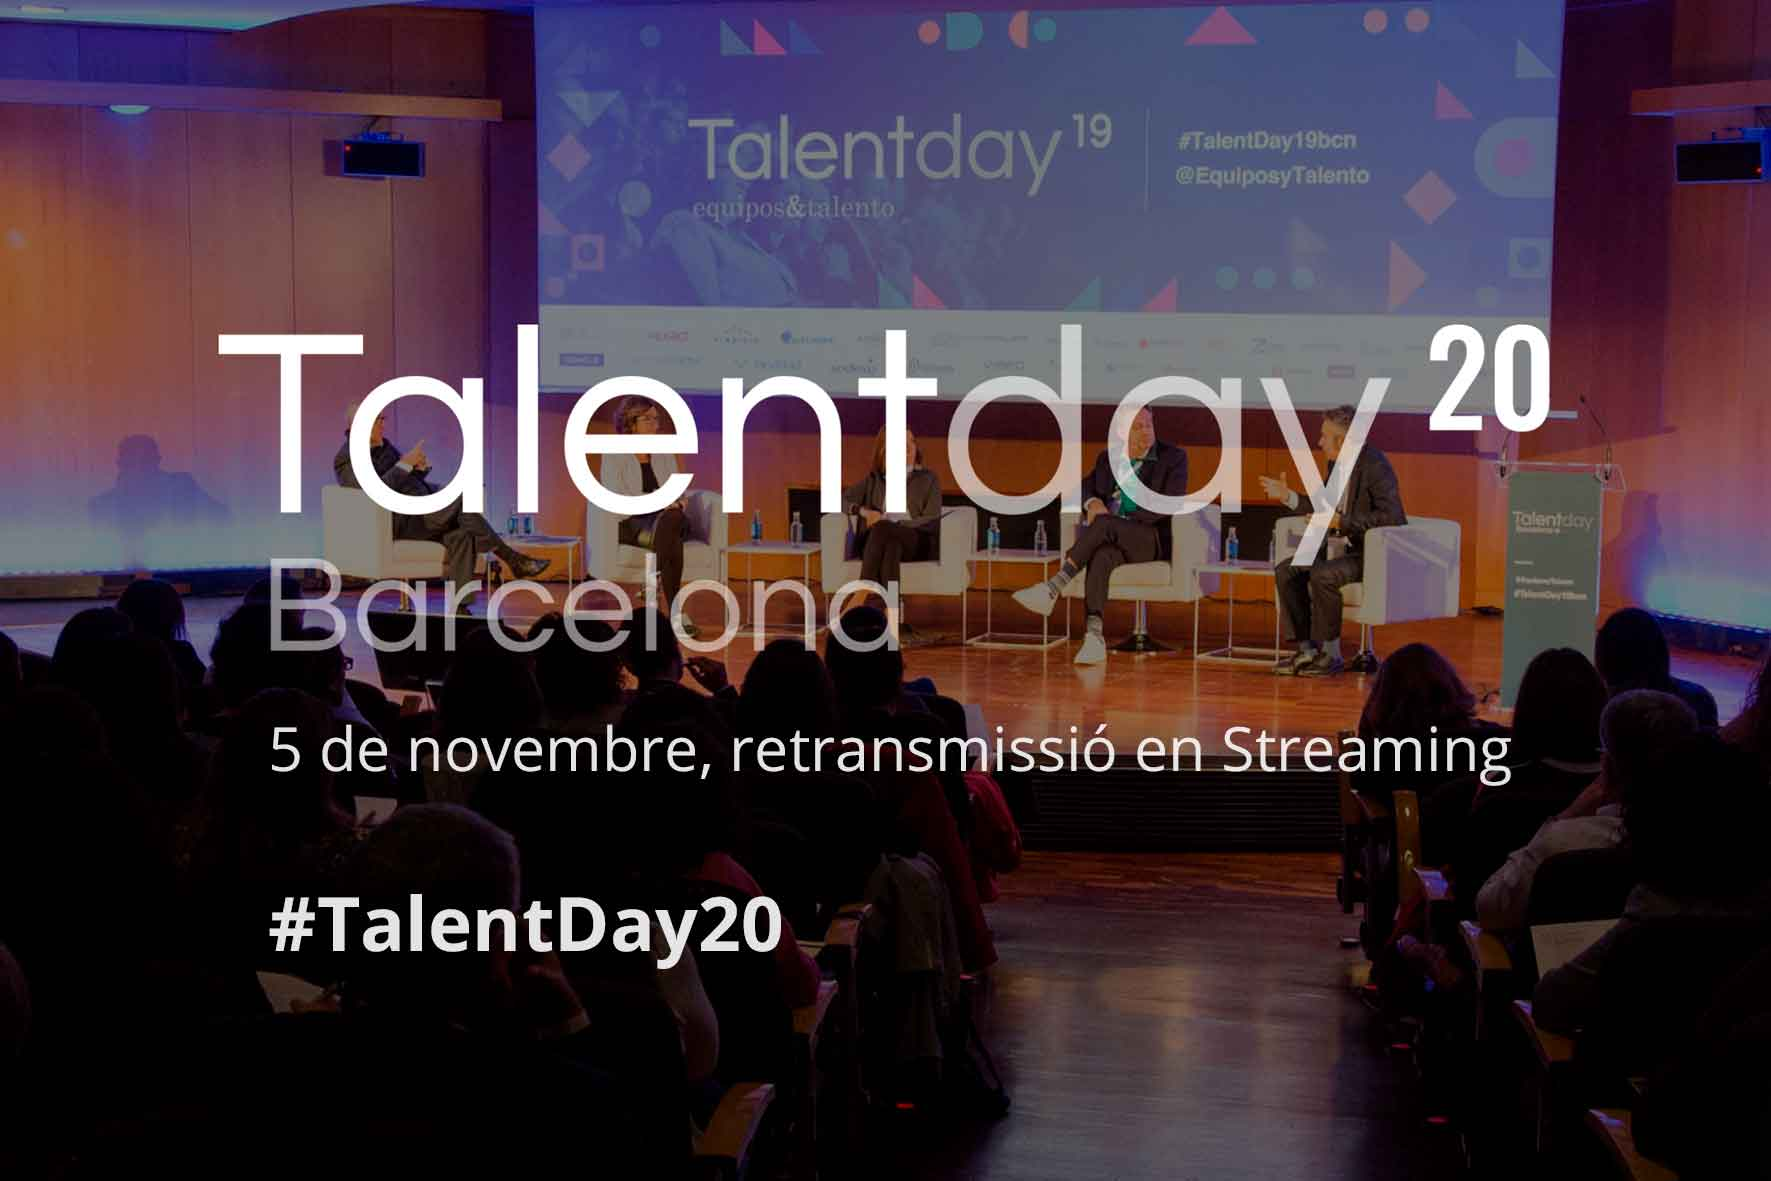 Participarem en el Talent Day Barcelona 2020: Reconnecting People & Reinventing Organizations